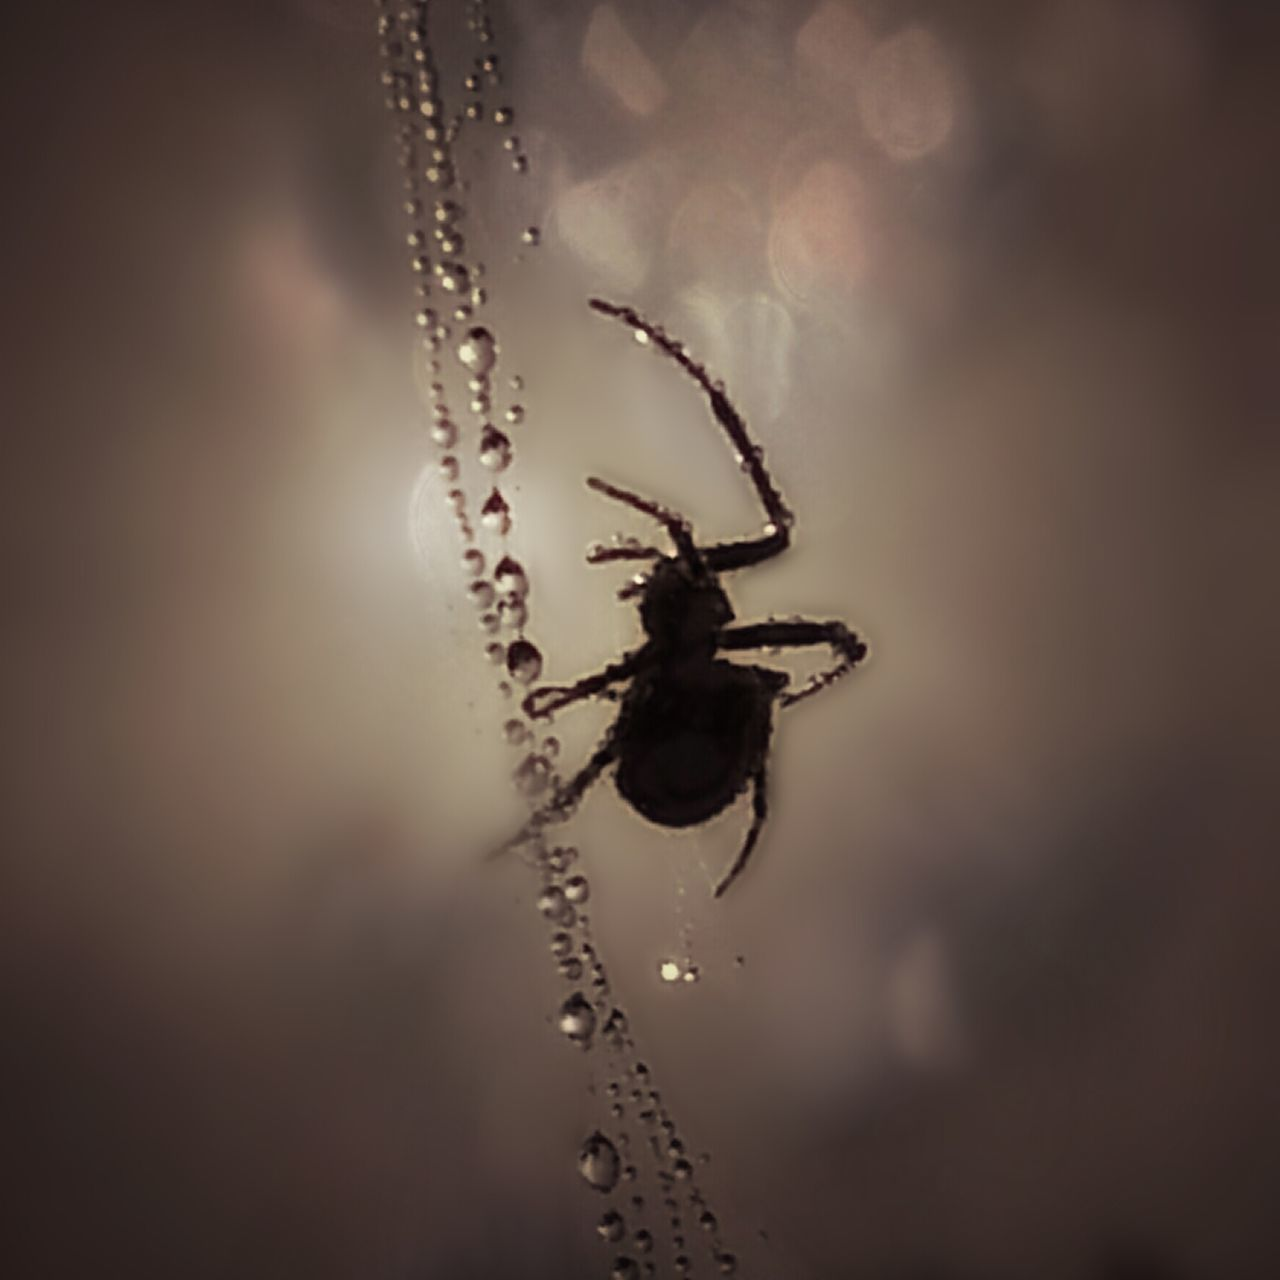 Spider Macro Spiderweb Nature Naturelovers Nature Photography Moody Moodygram Macro_collection Macro Photography Droplets Water Droplets Cobweb Close Up Beautiful Beautiful Nature Bokeh